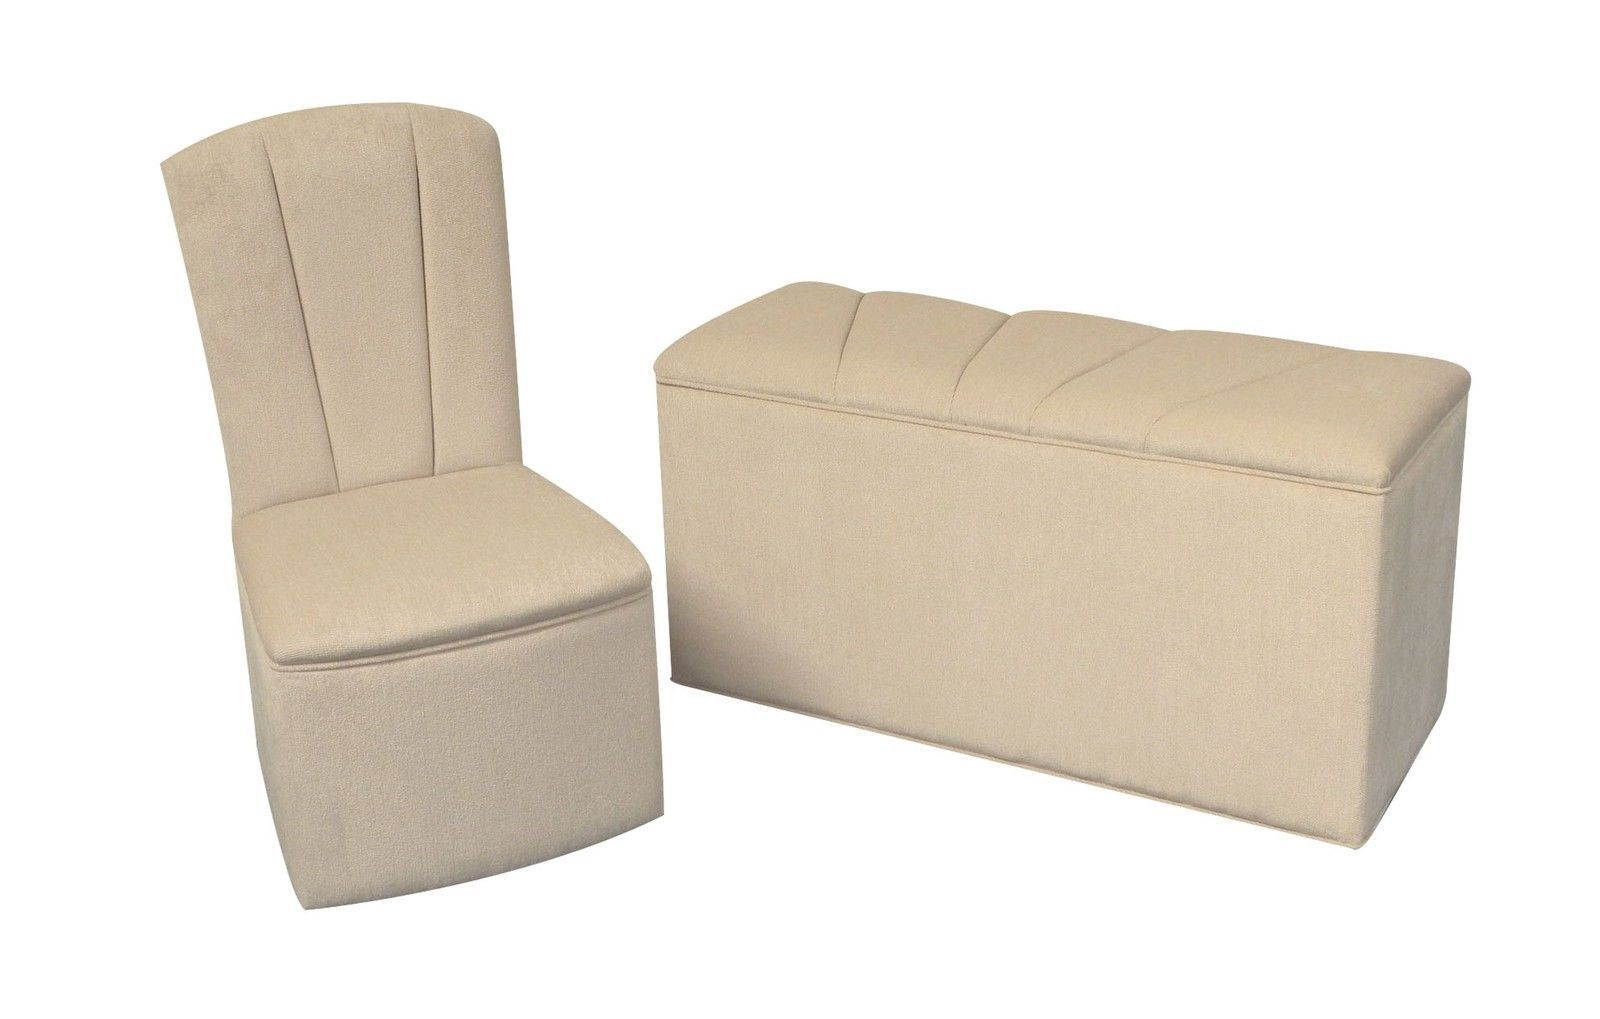 Chairs With Ottoman Designer Bedroom Chair Ottoman Set In Light Beige Chenille